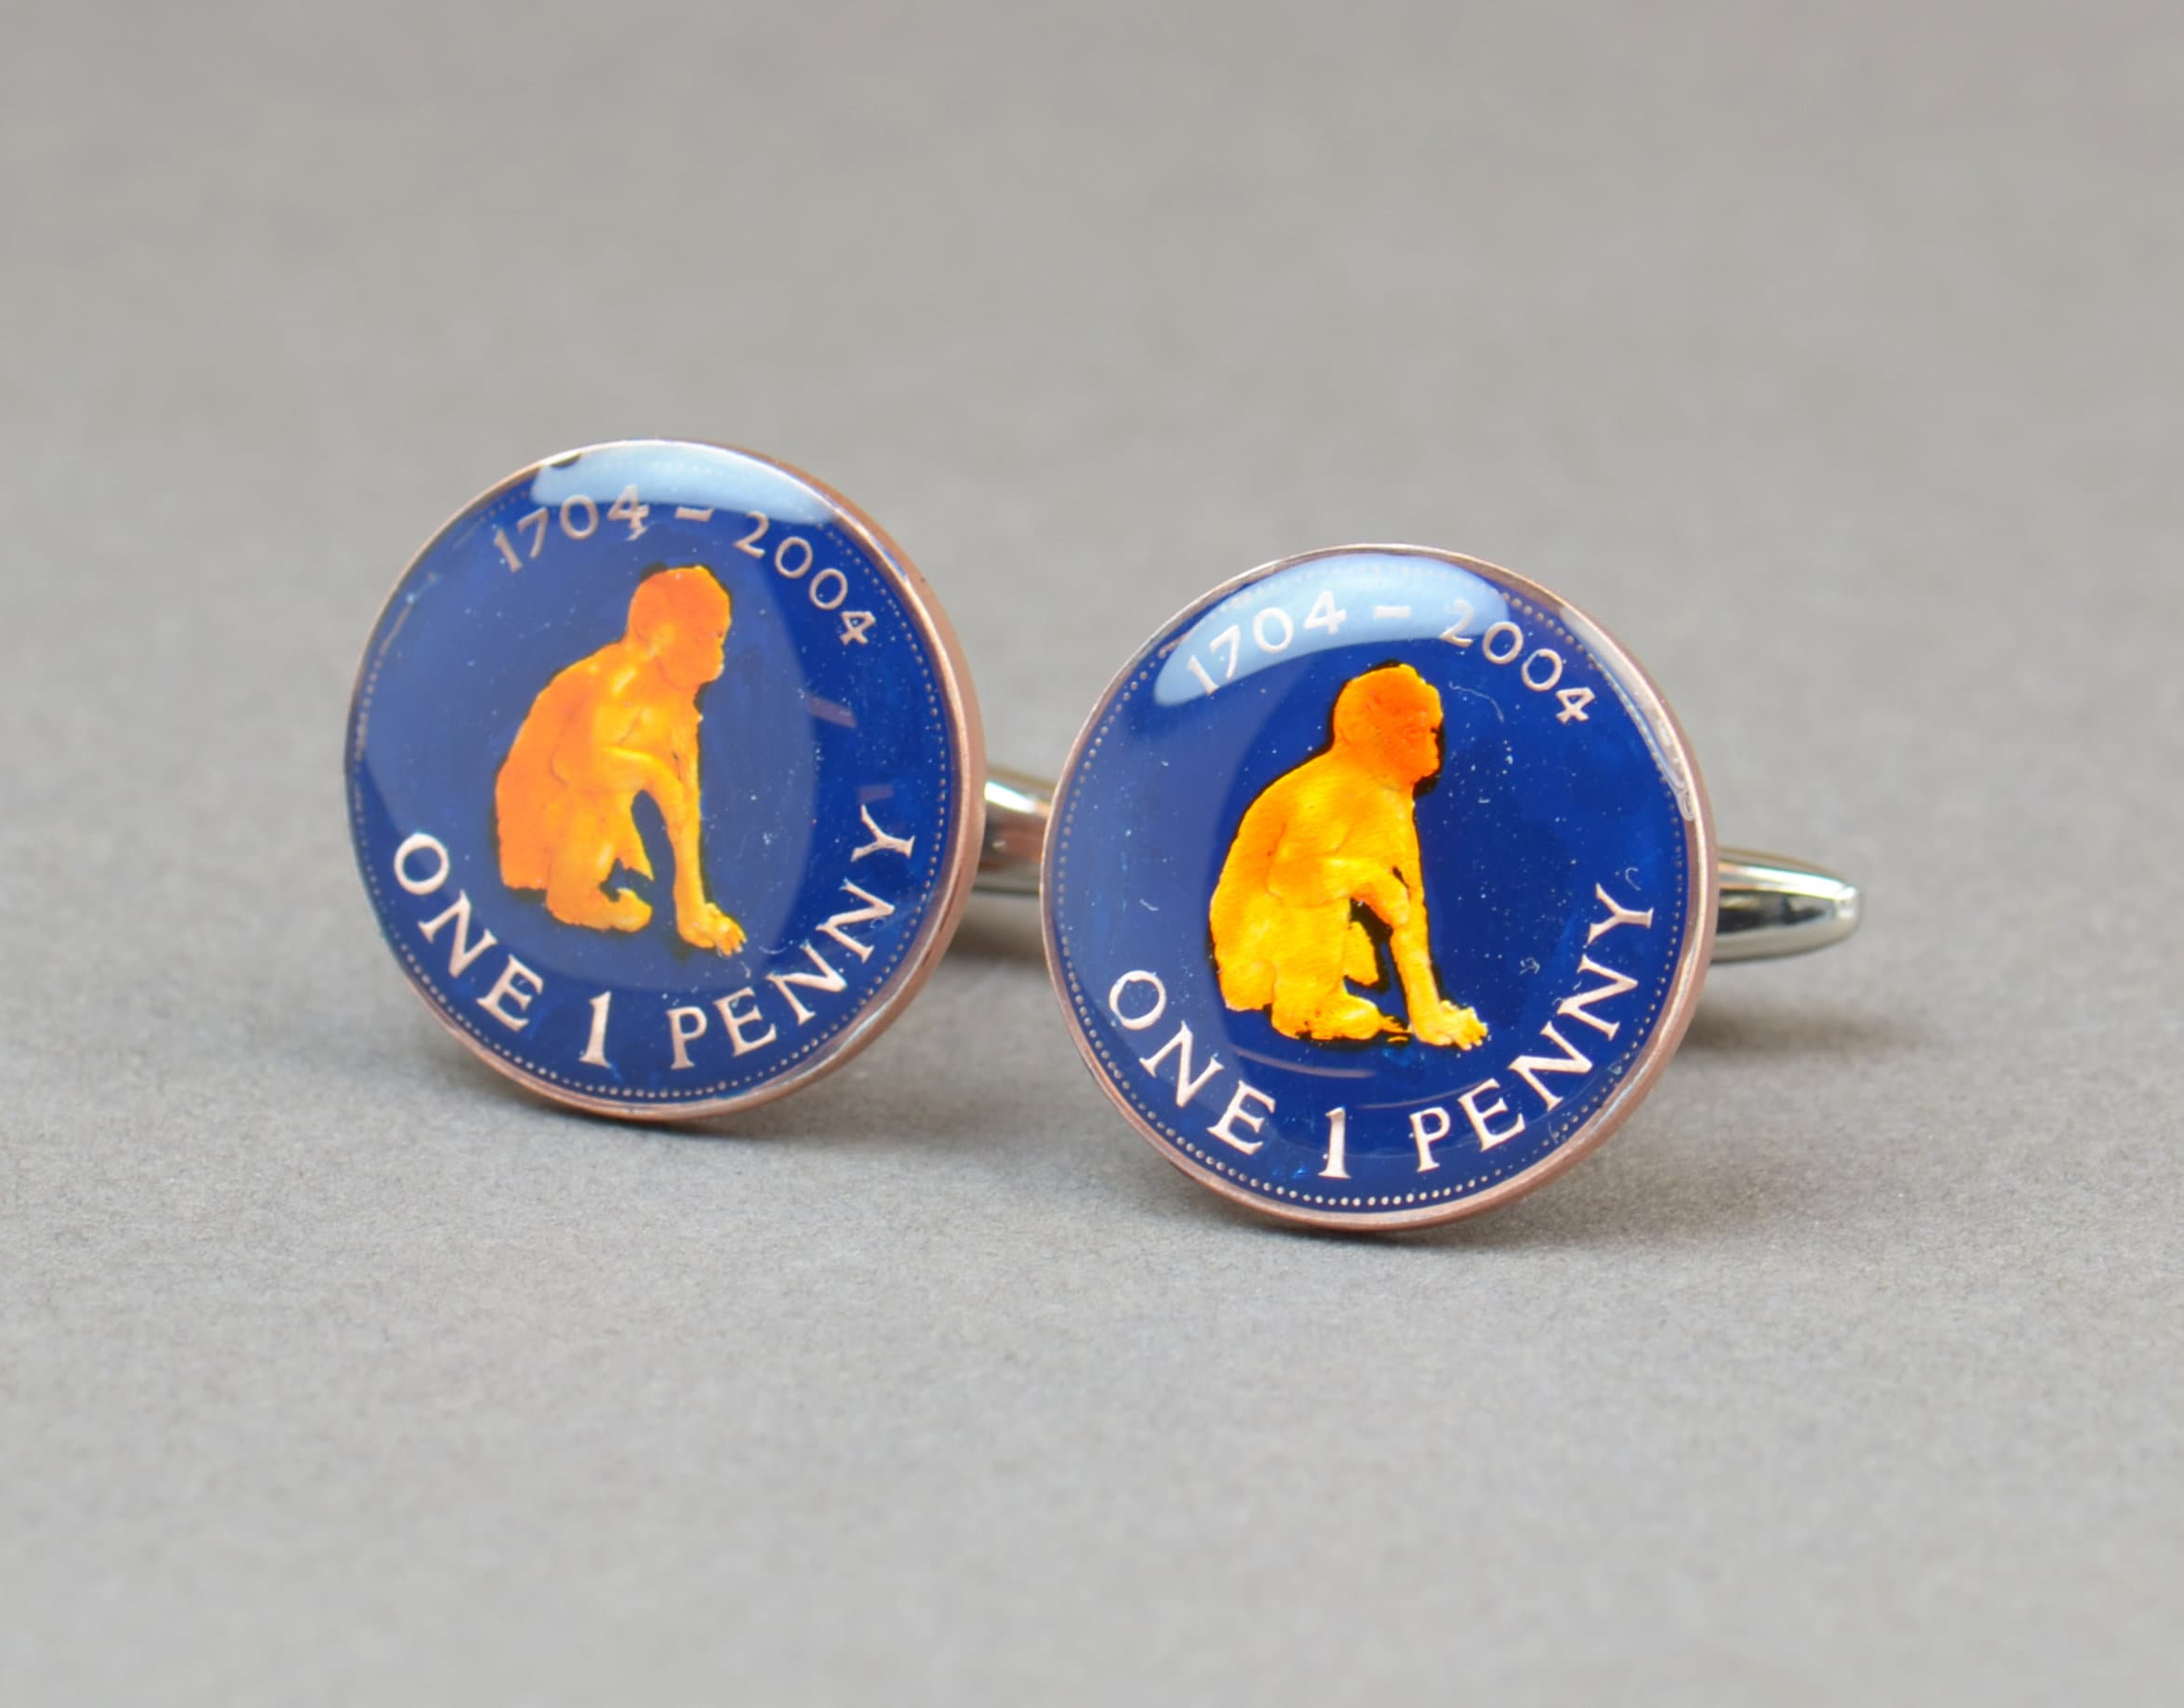 Cufflinks Germany Euro Coin Collector Gifts,Dad Coin Gift,Upcycled,mens gift accessories jewelry